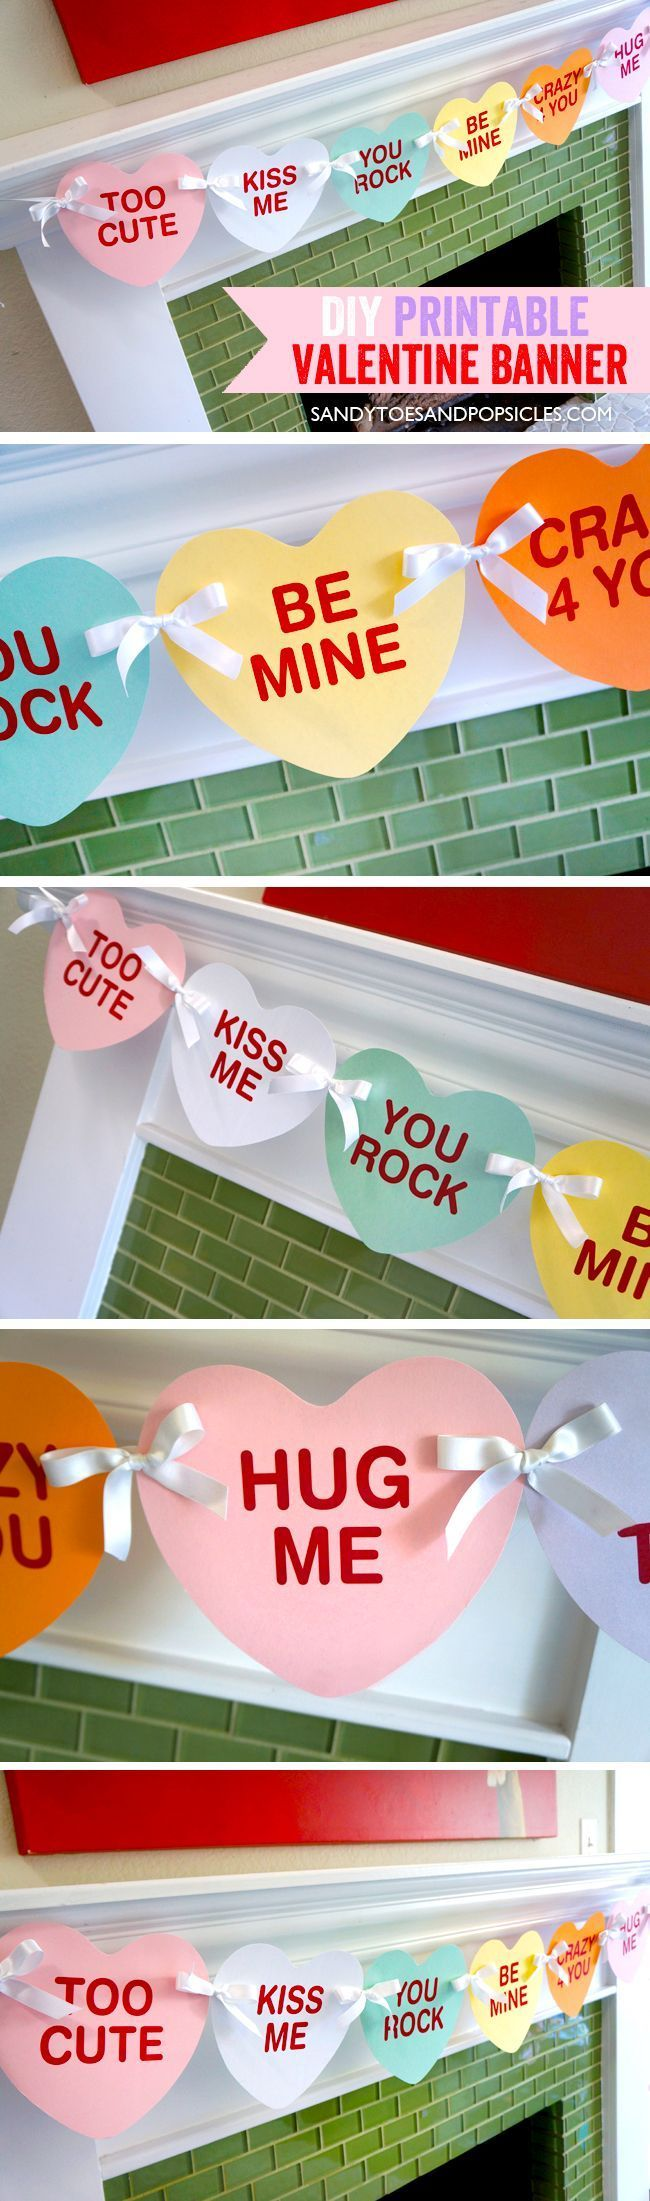 Photo of Easy DIY Valentine's Day Printable Banner | Free Printable – Popsicle Blog